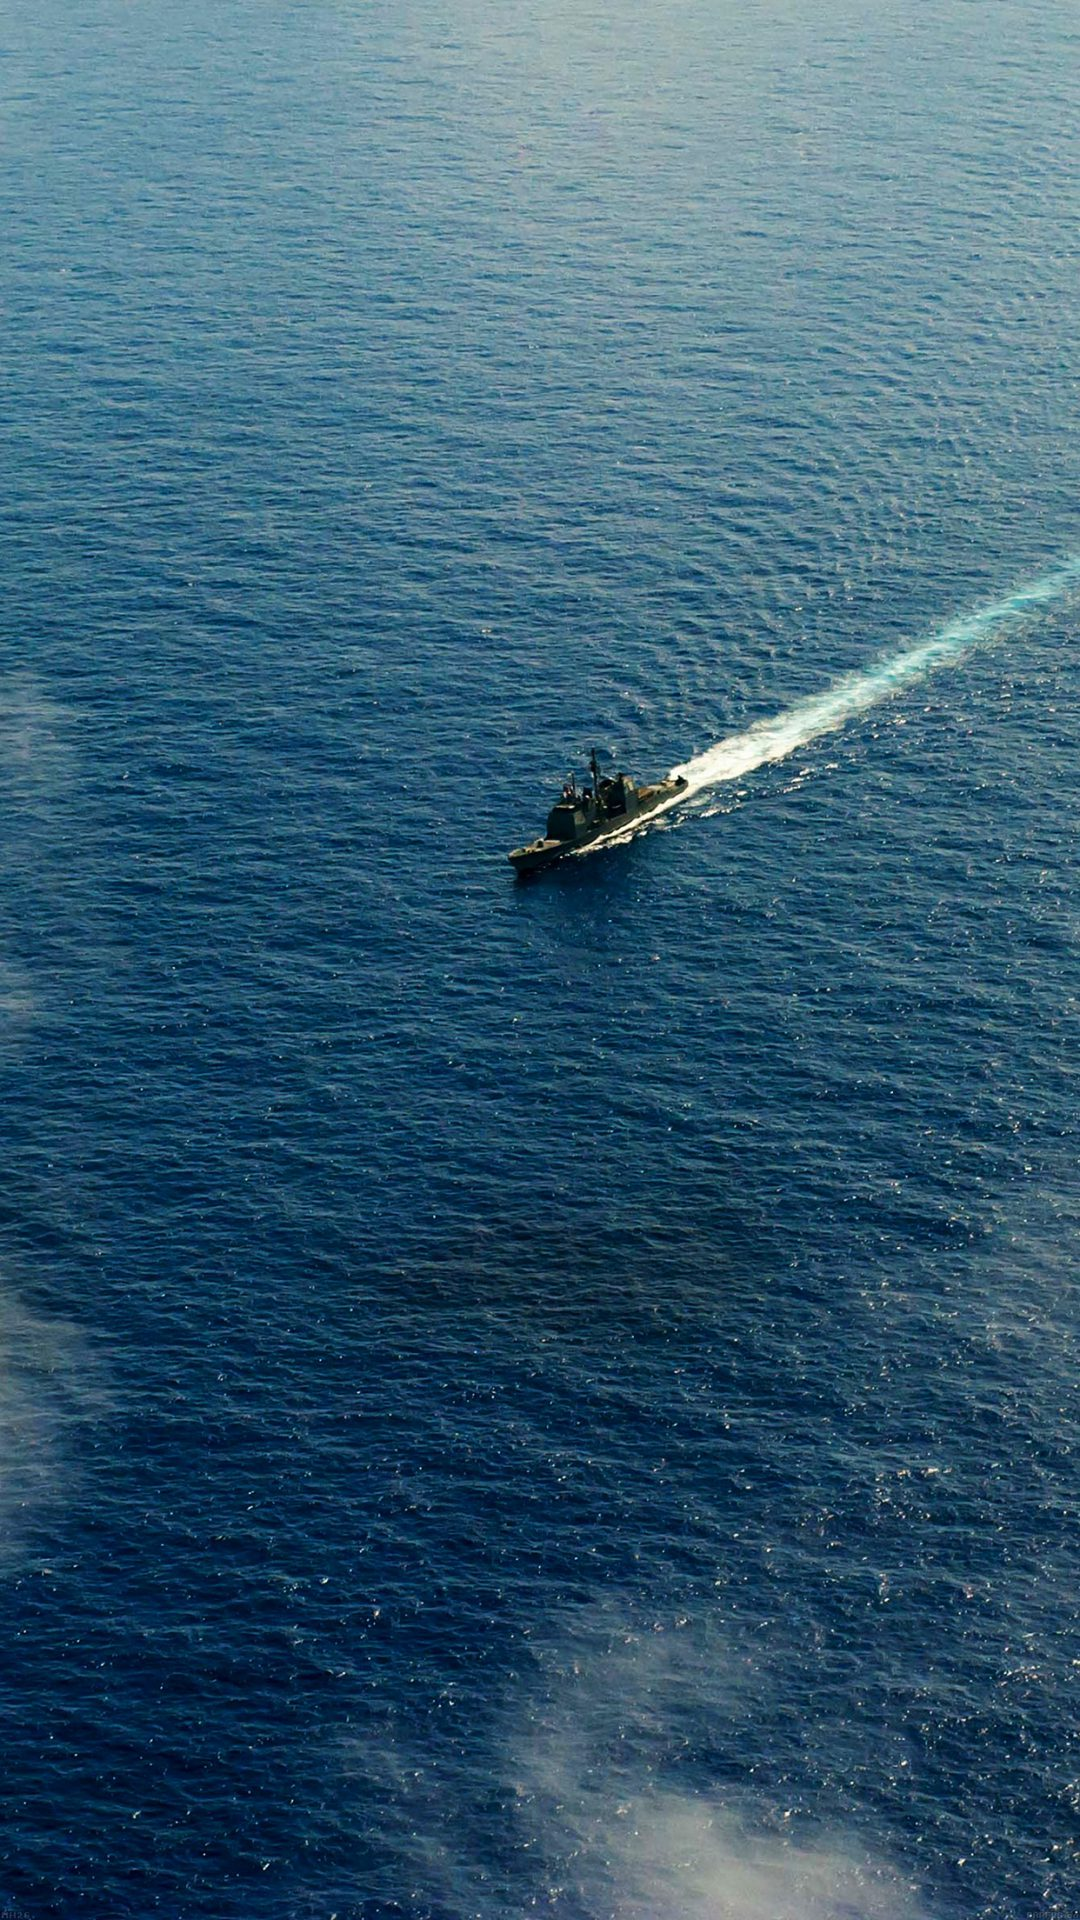 Ocean Ship Sea Pacific Nature Military Army